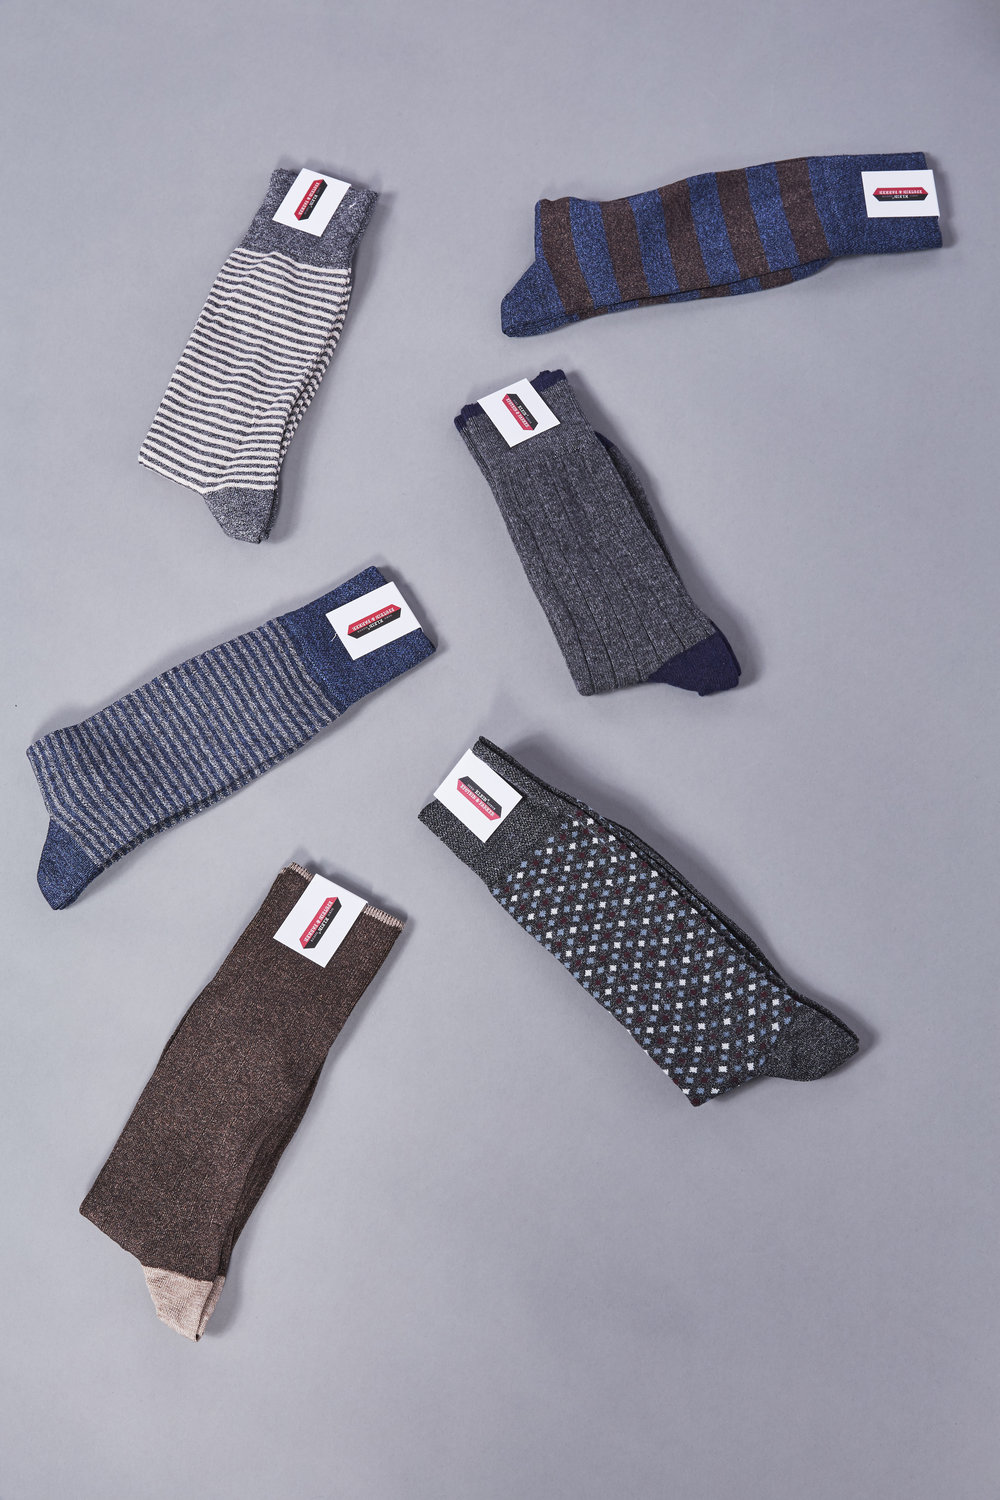 No matter the pattern or color, our socks will add style and fun to every outfit.